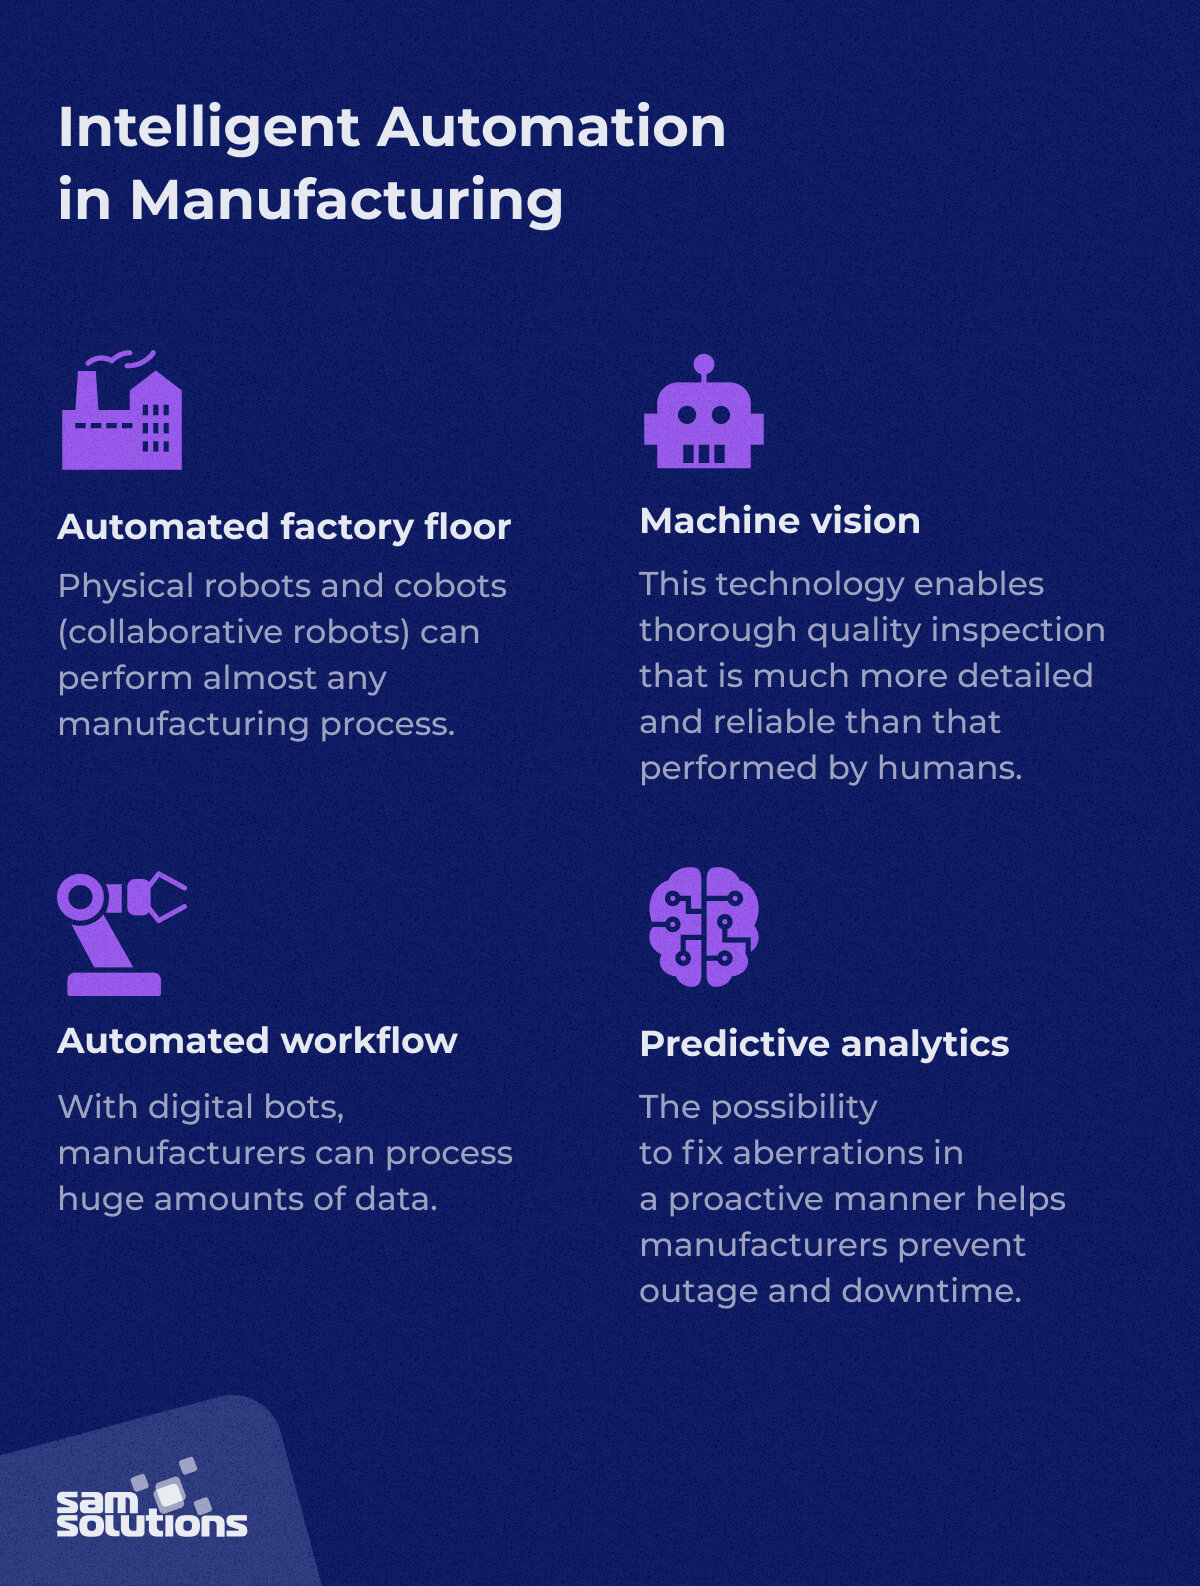 Intelligent-Automation-IA-Manufacturing-image